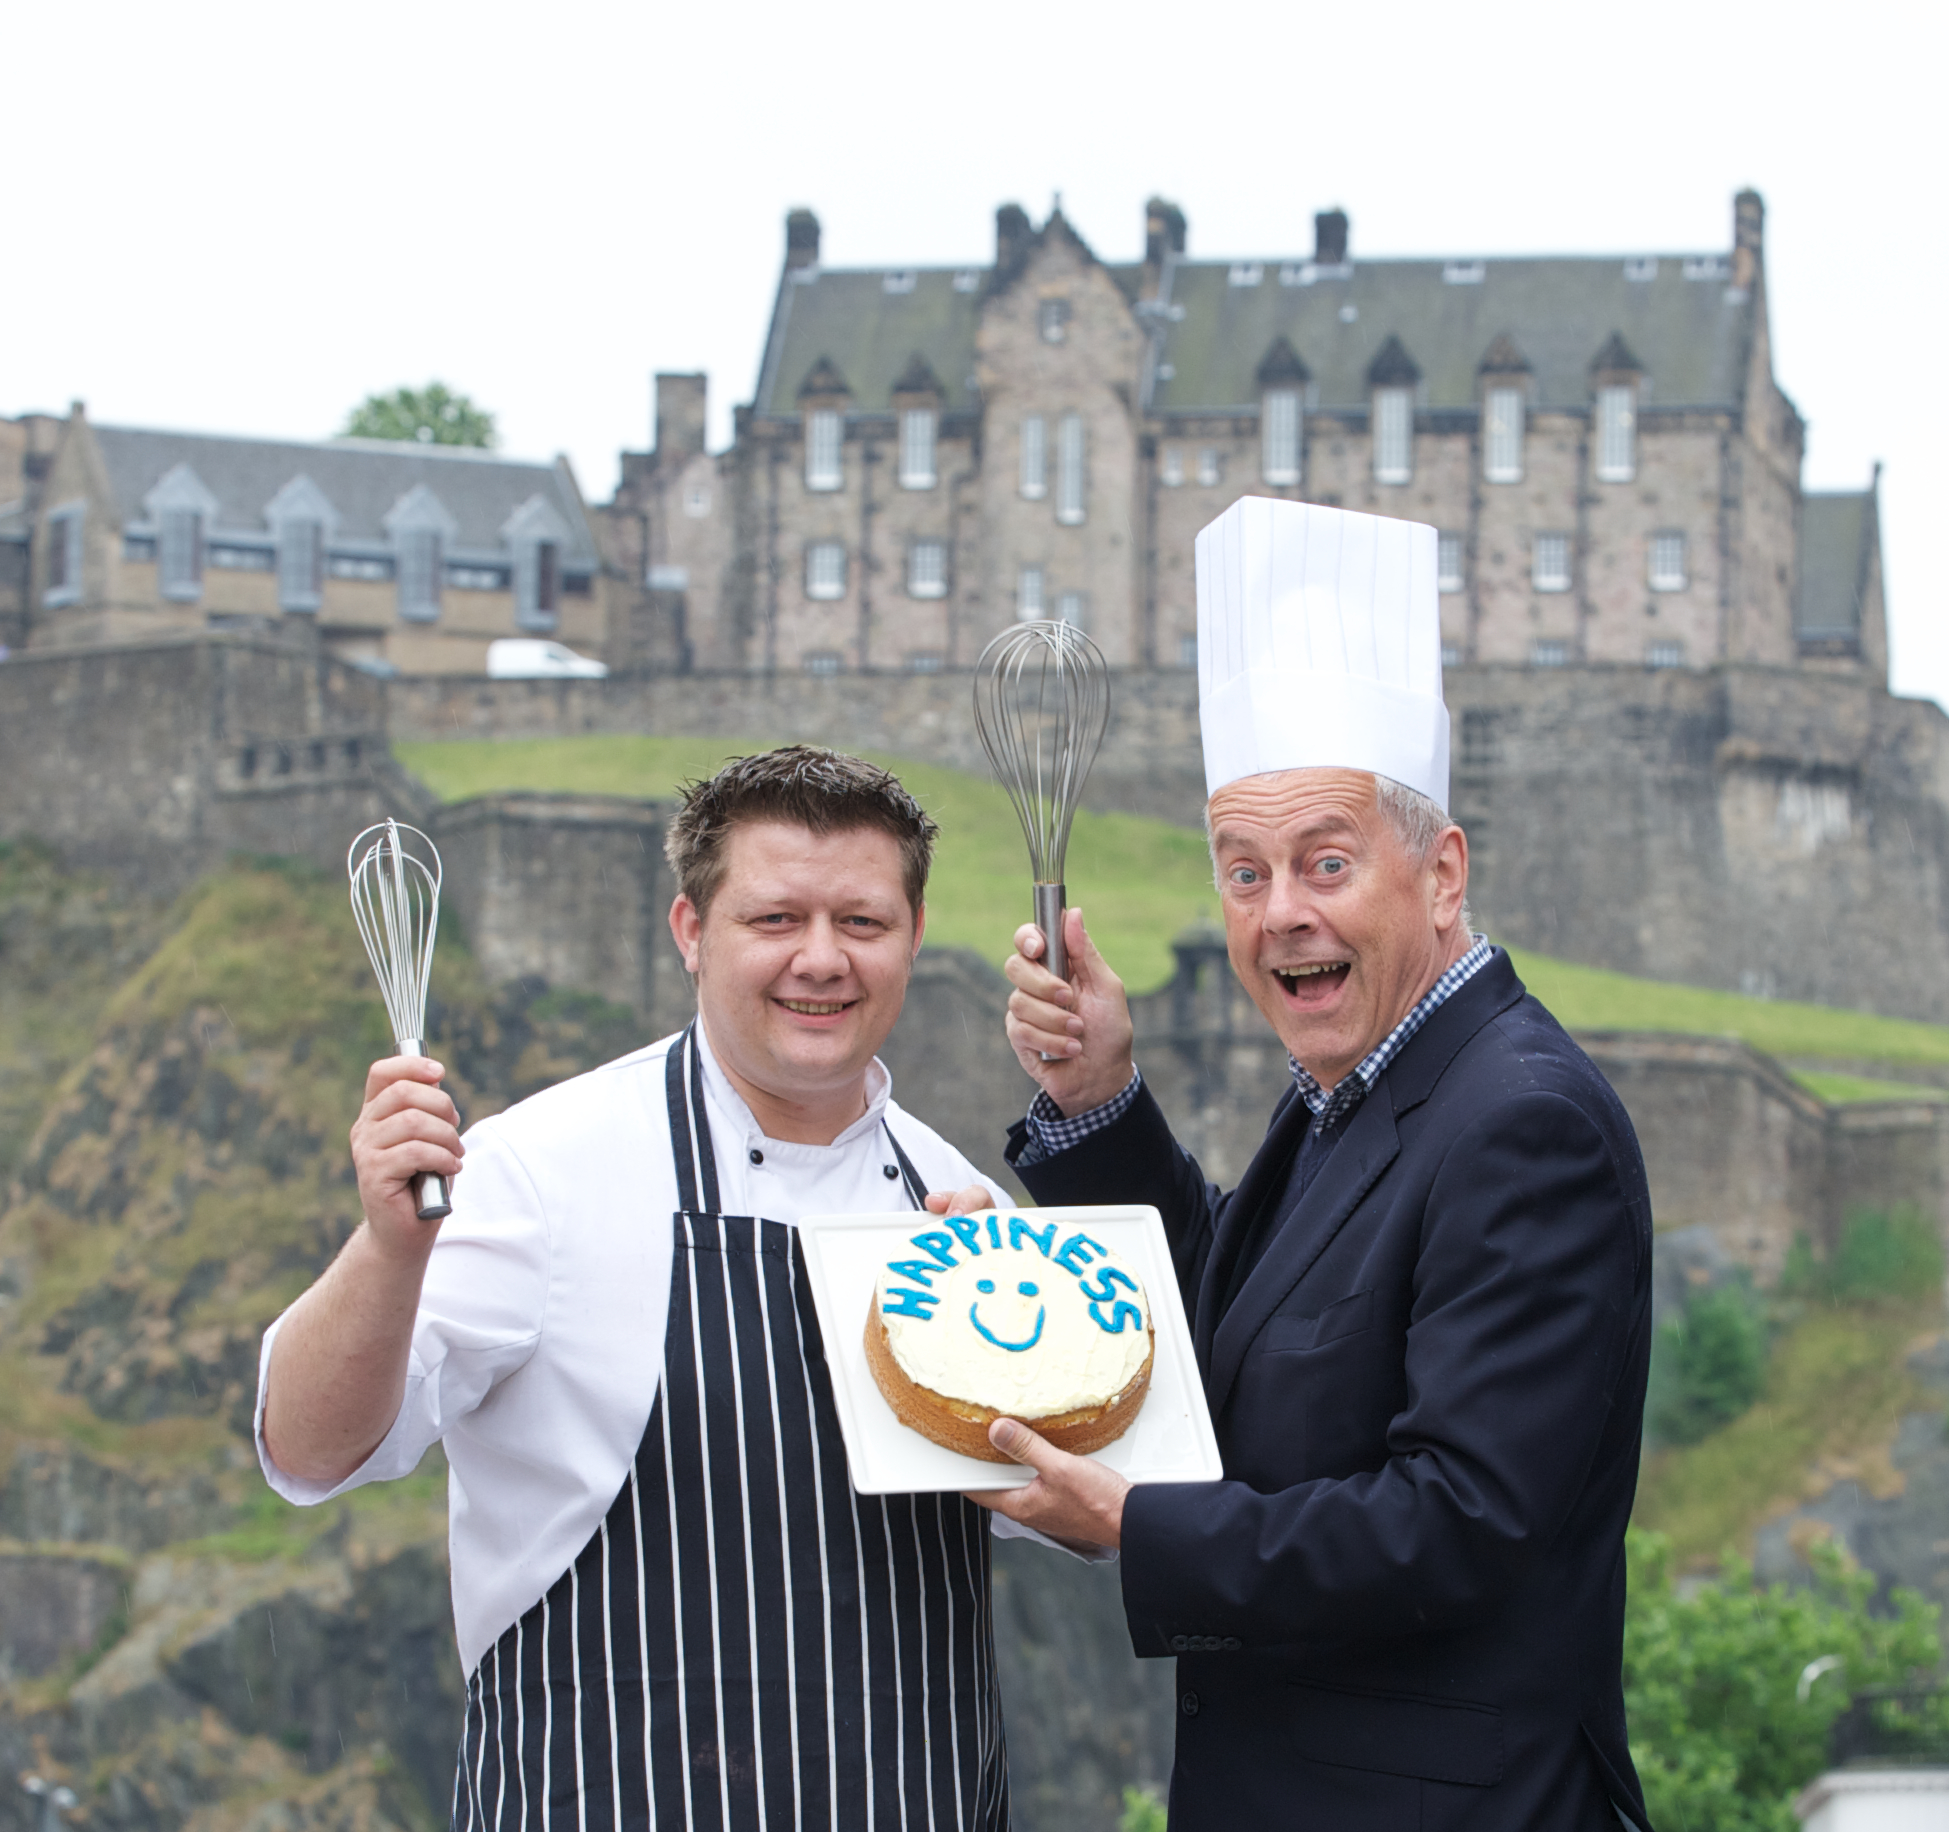 Mark Greenaway and Gyles Brandreth launched Edinburgh Foodies